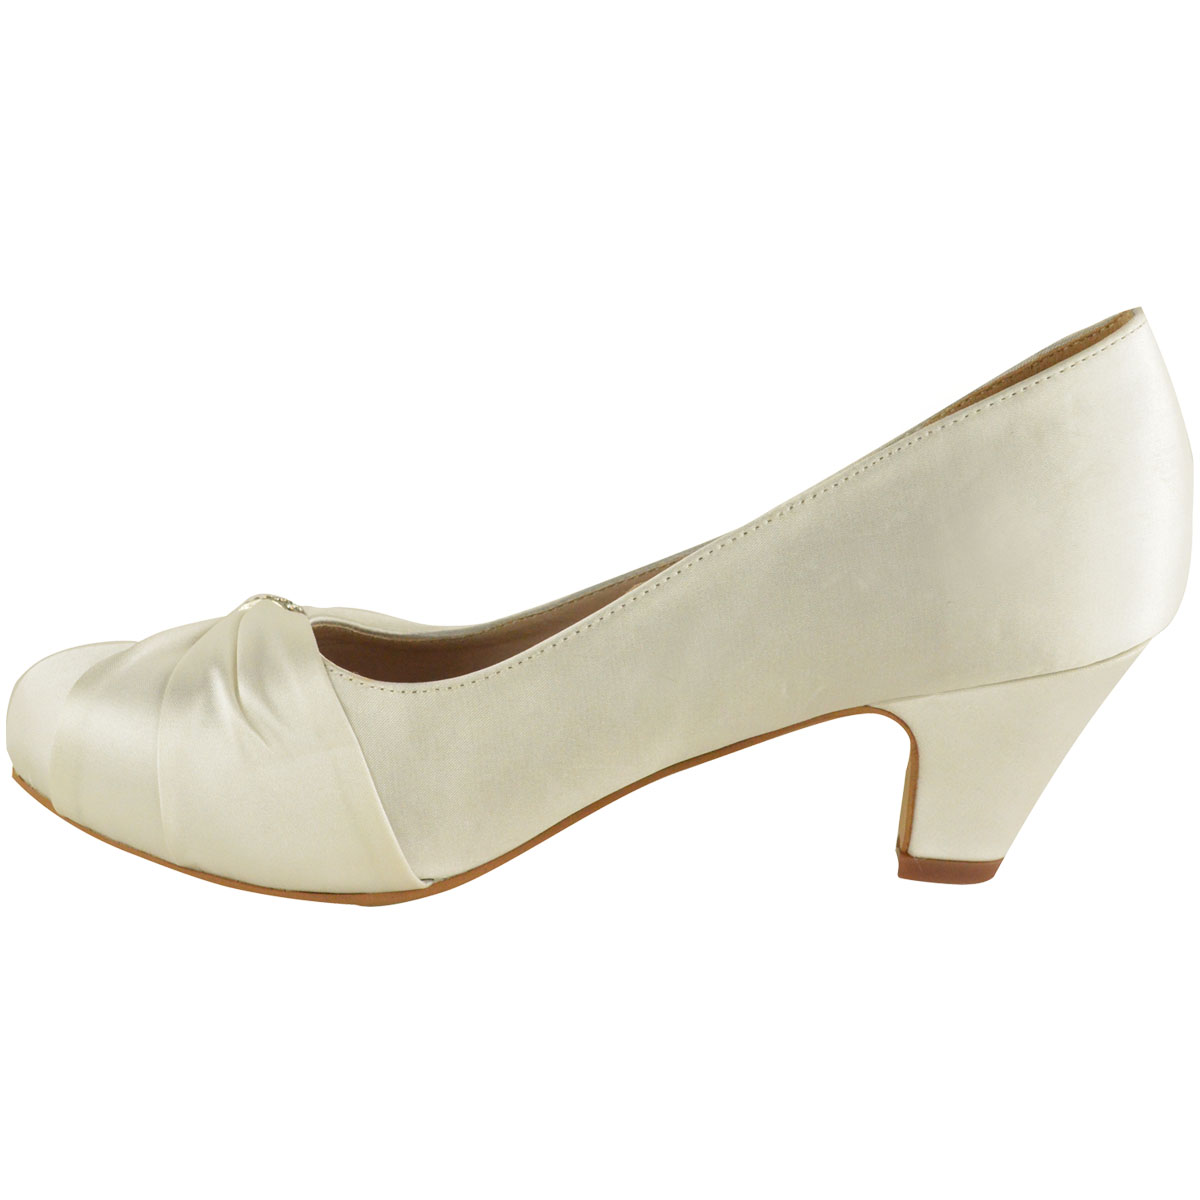 Womens-Wedding-Shoes-Ladies-Low-Mid-Heels-Bridal-Bridesmaid-Party-Sandals-Courts Indexbild 12